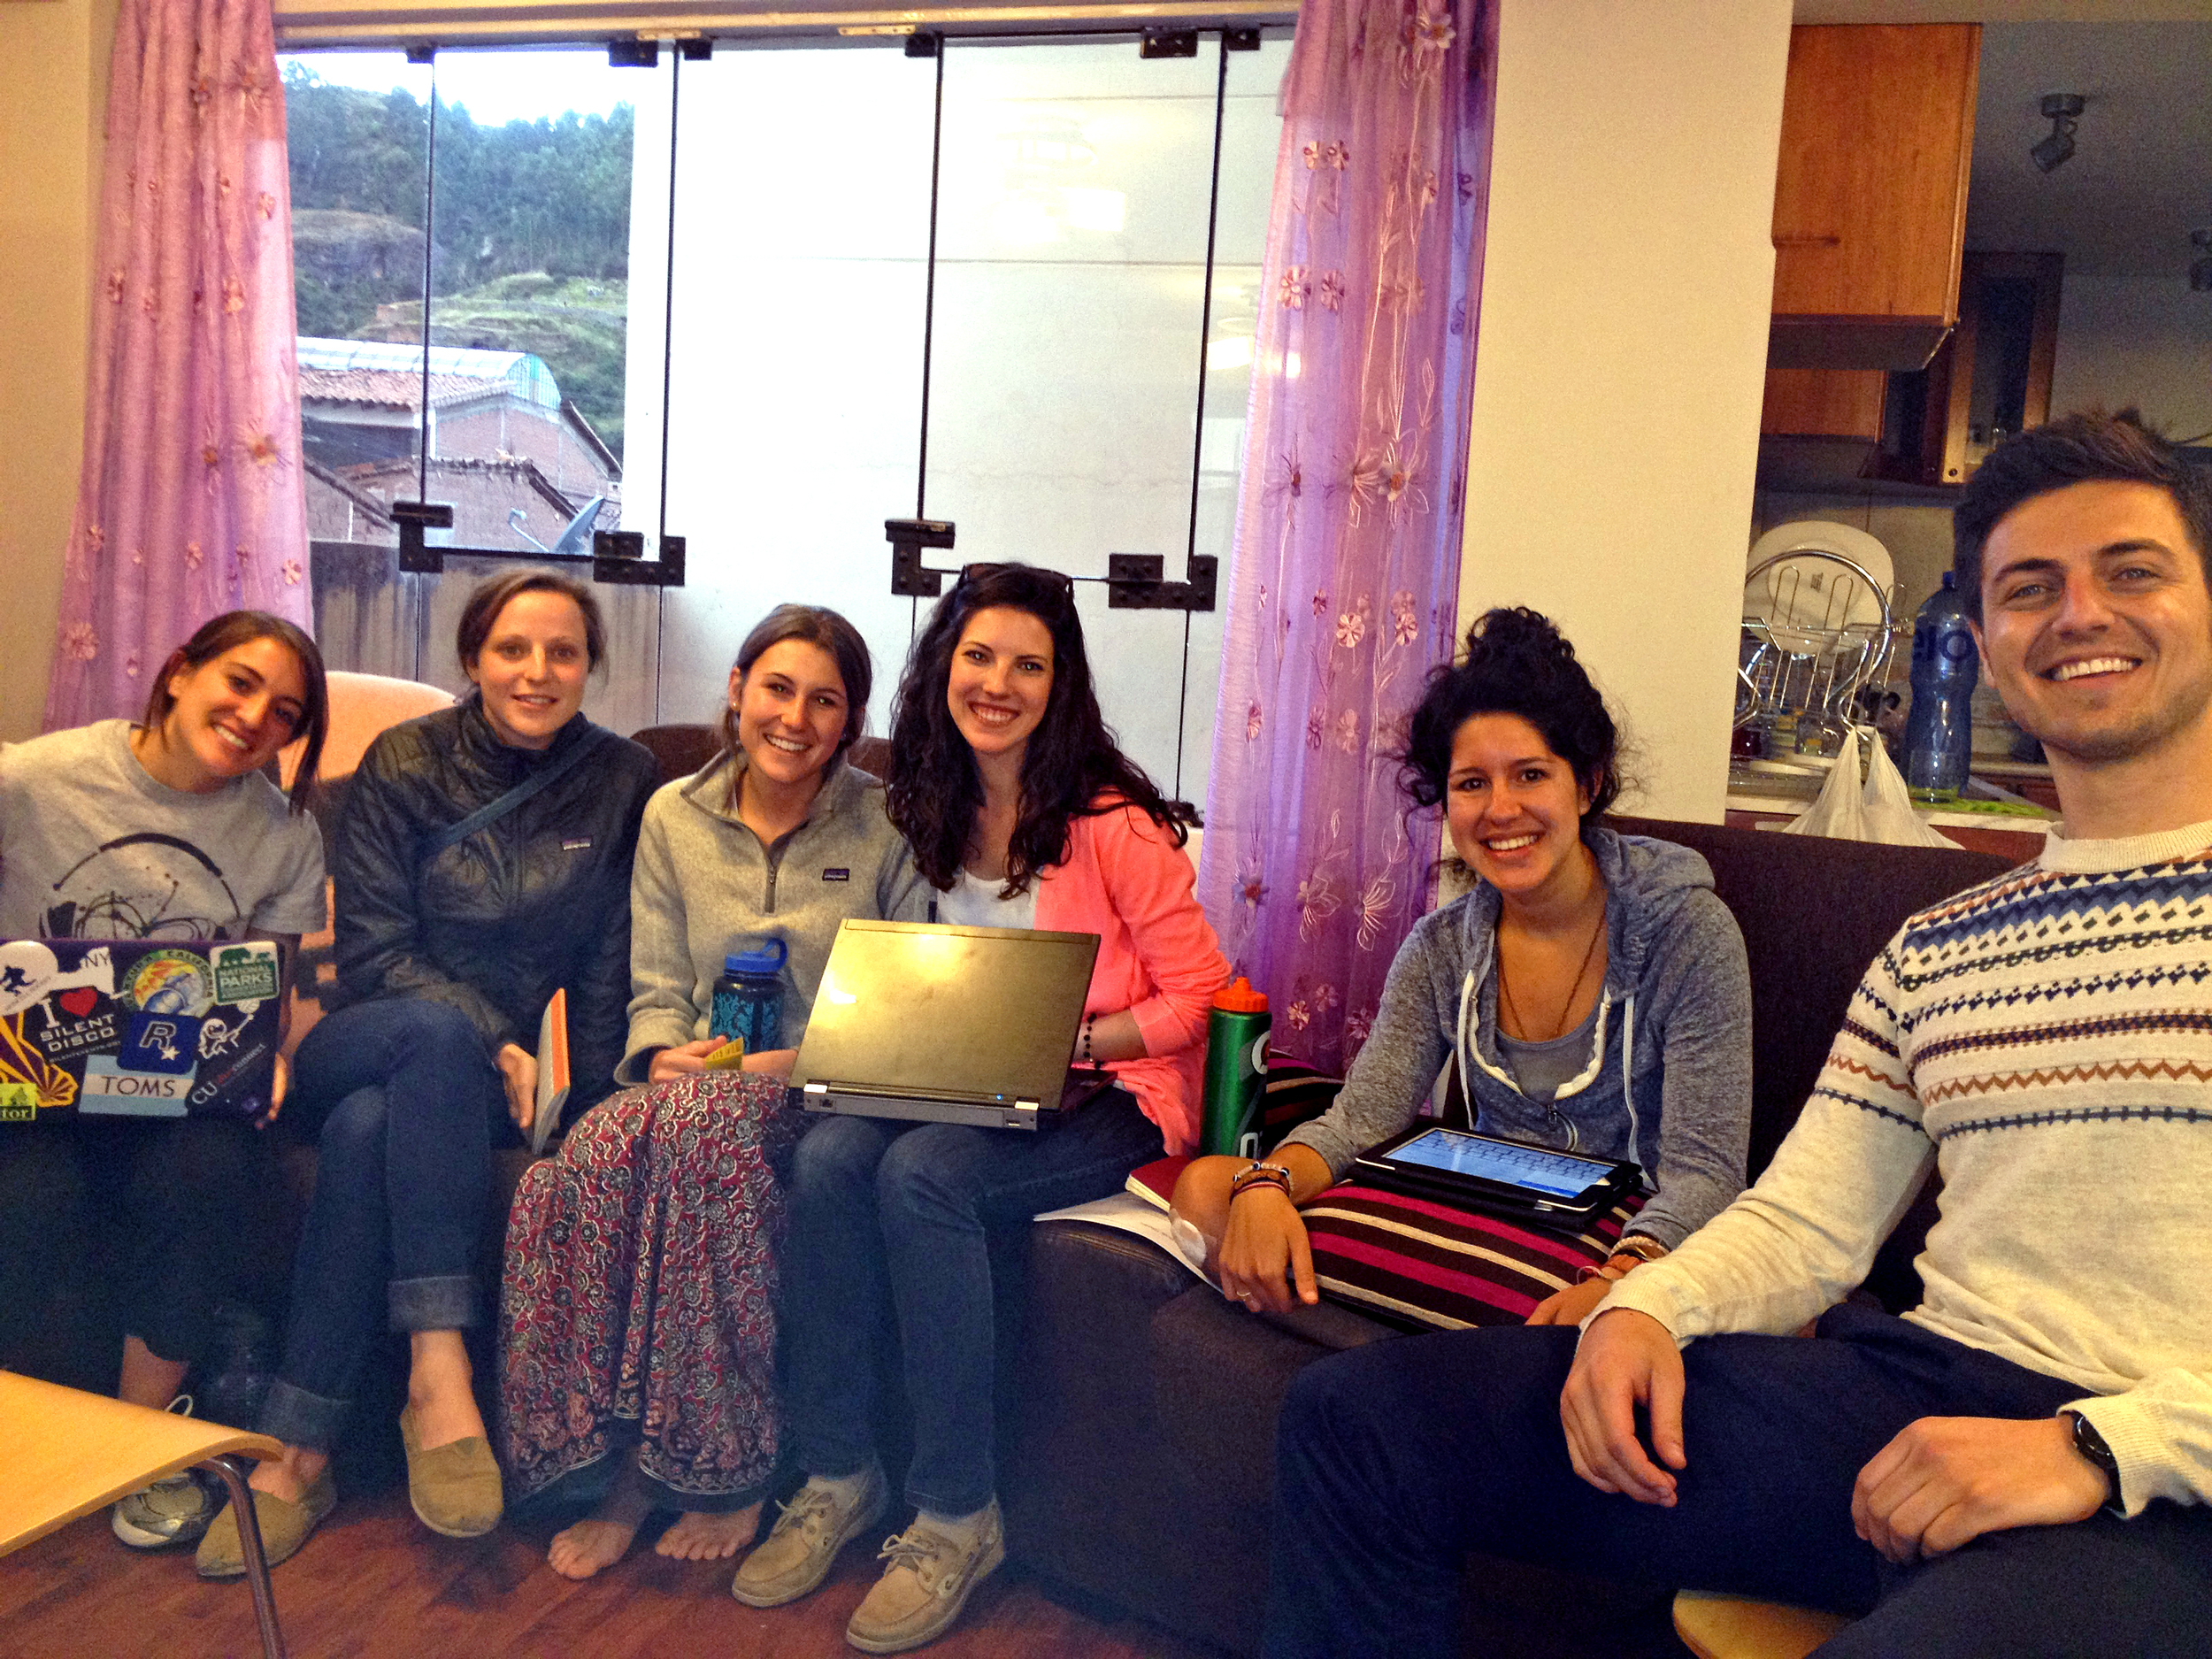 One of our team training sessions on how to approach, recruit, and enroll moms into our study. Photo taken: May 23, 2013.